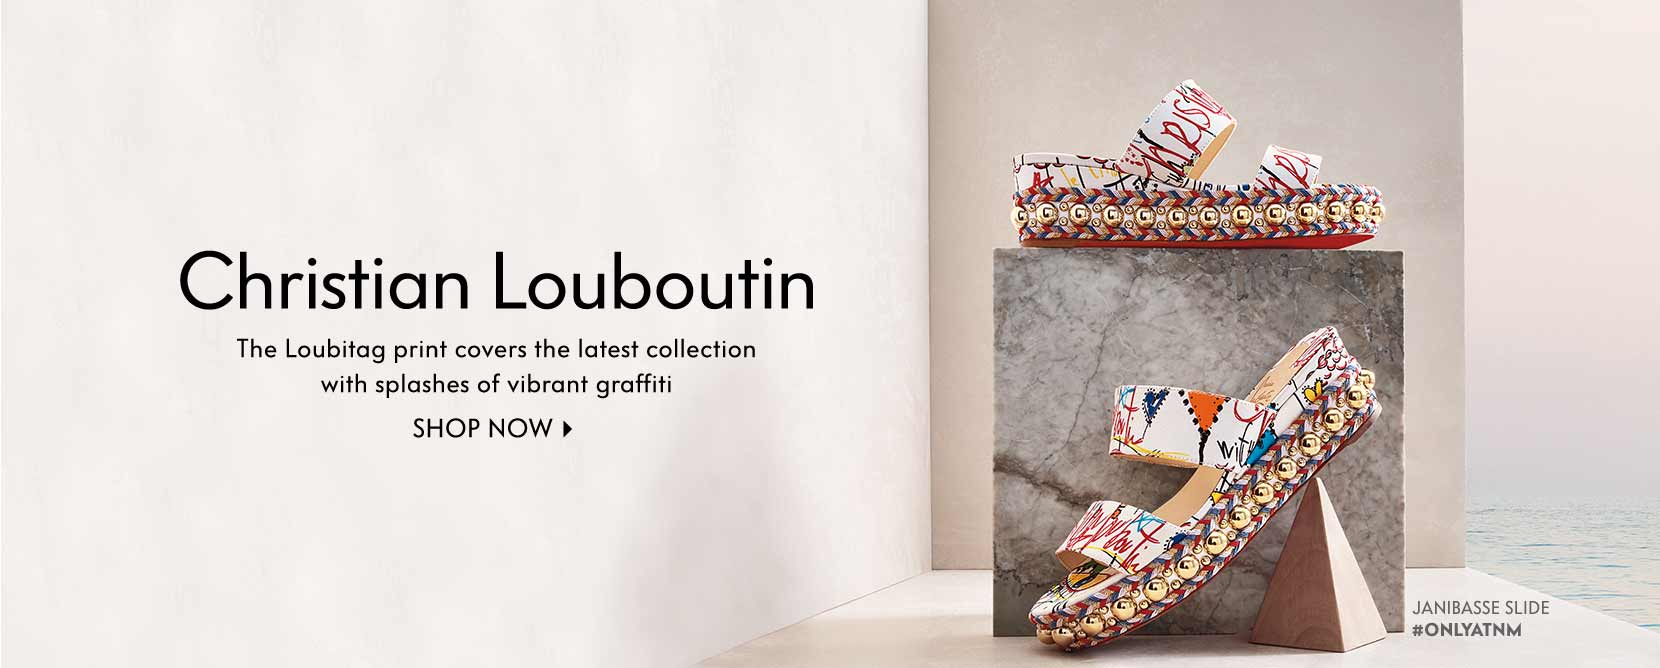 Christian Louboutin The Loubitag print covers the latest collection with splashes of vibrant graffiti Shop now